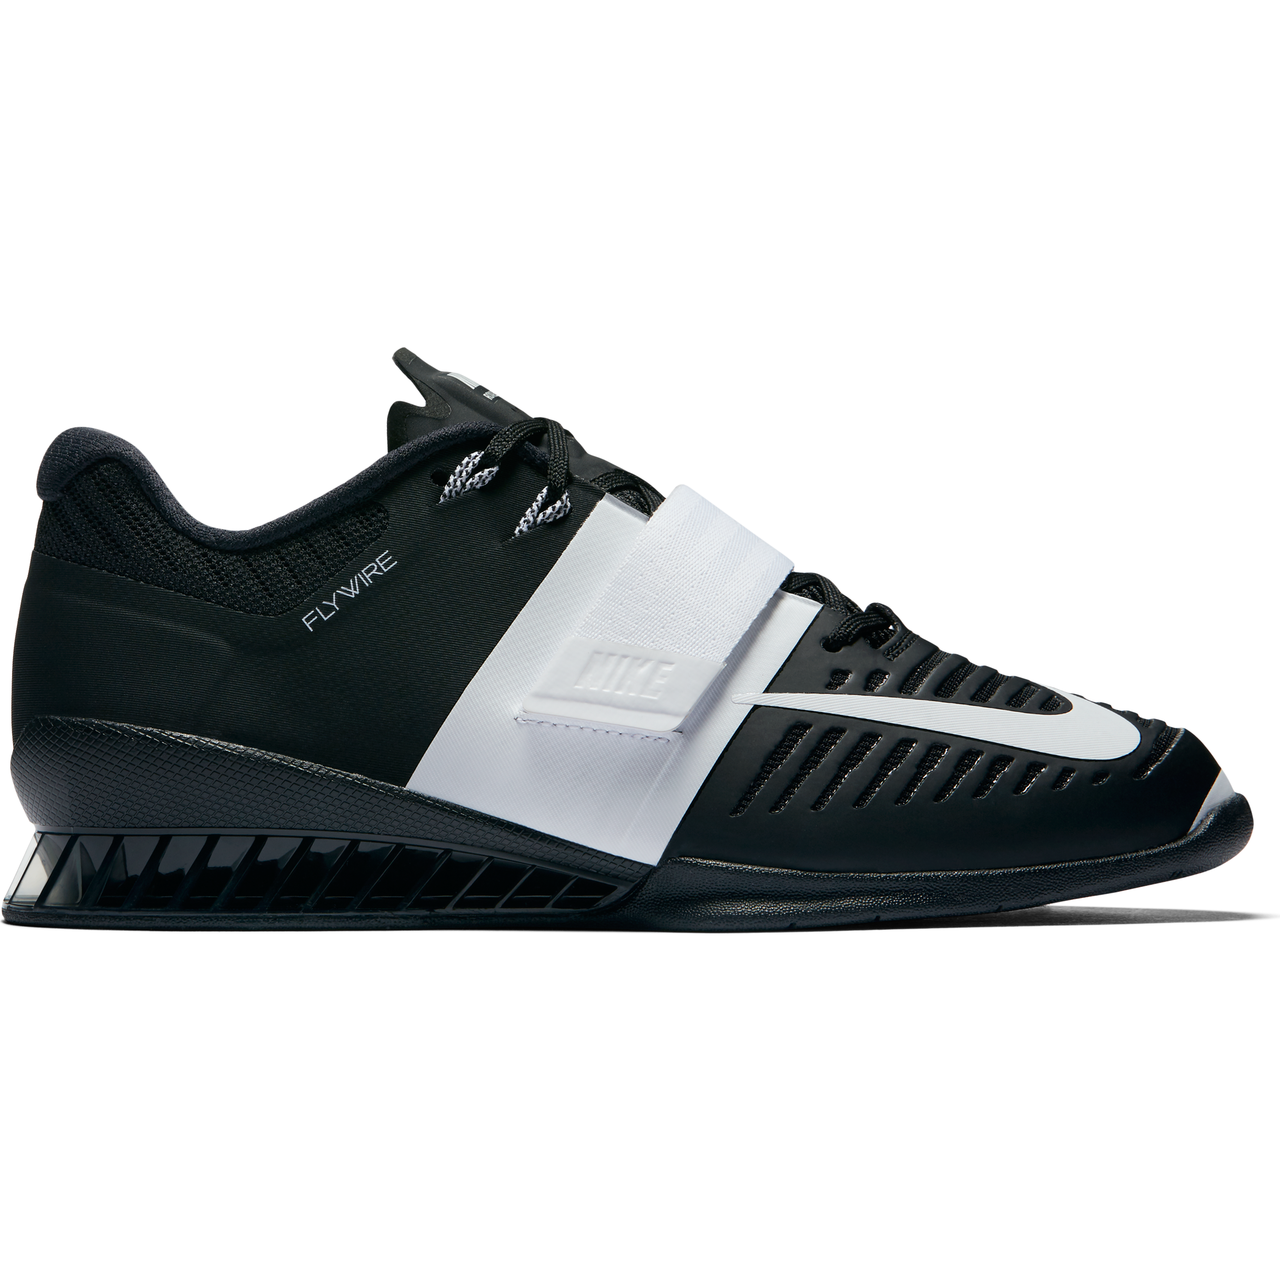 check out 4ffa8 726d6 ... multiple colors 32e5c 84479 Nike Romaleos 3 Womens Weightlifting shoe  001 Black-White Teamstore Webshop